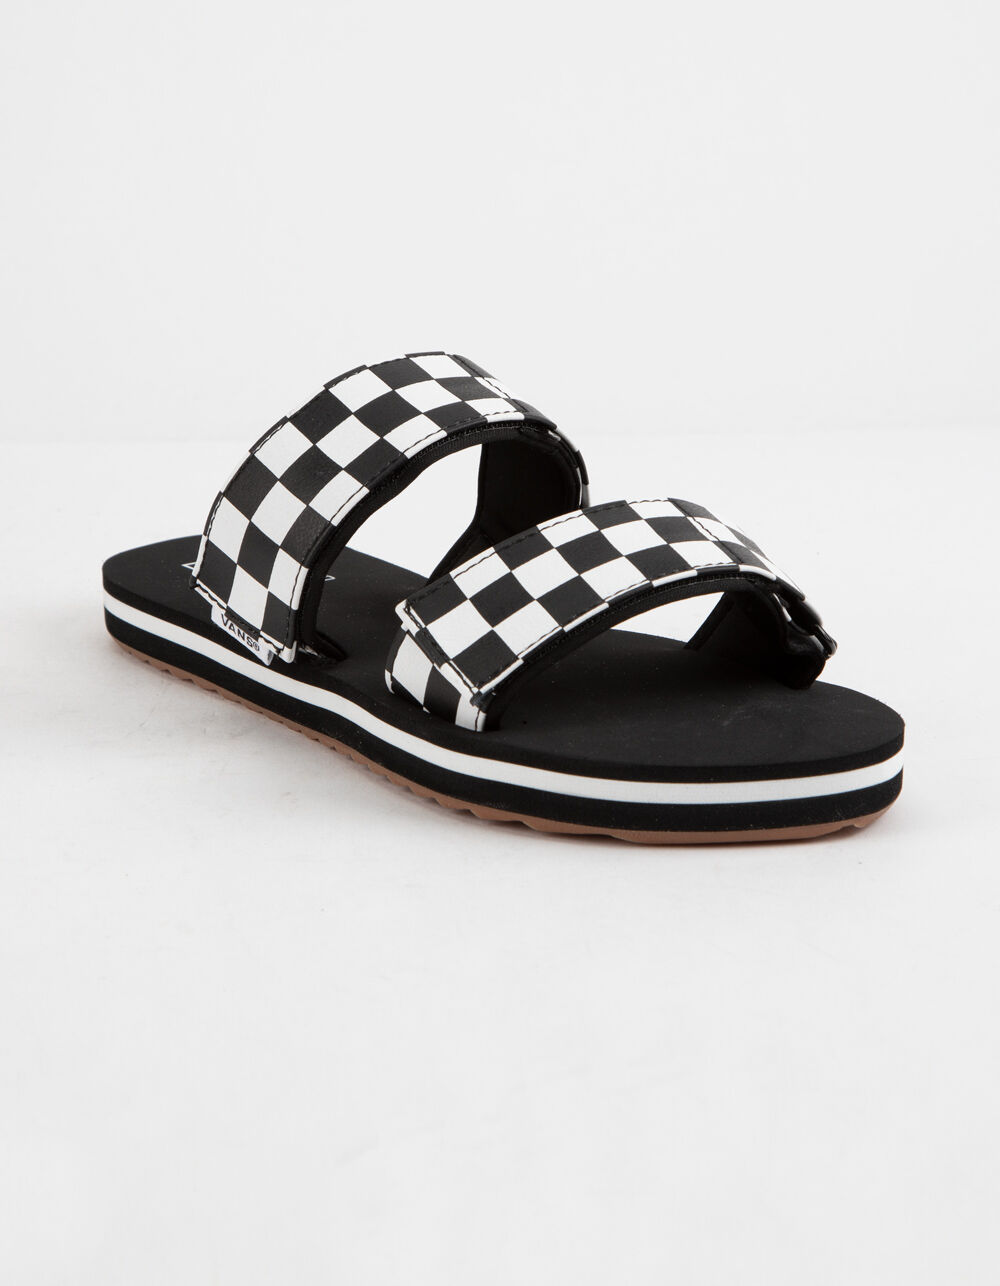 VANS Cayucas Checkerboard Black Velcro Slide Sandals